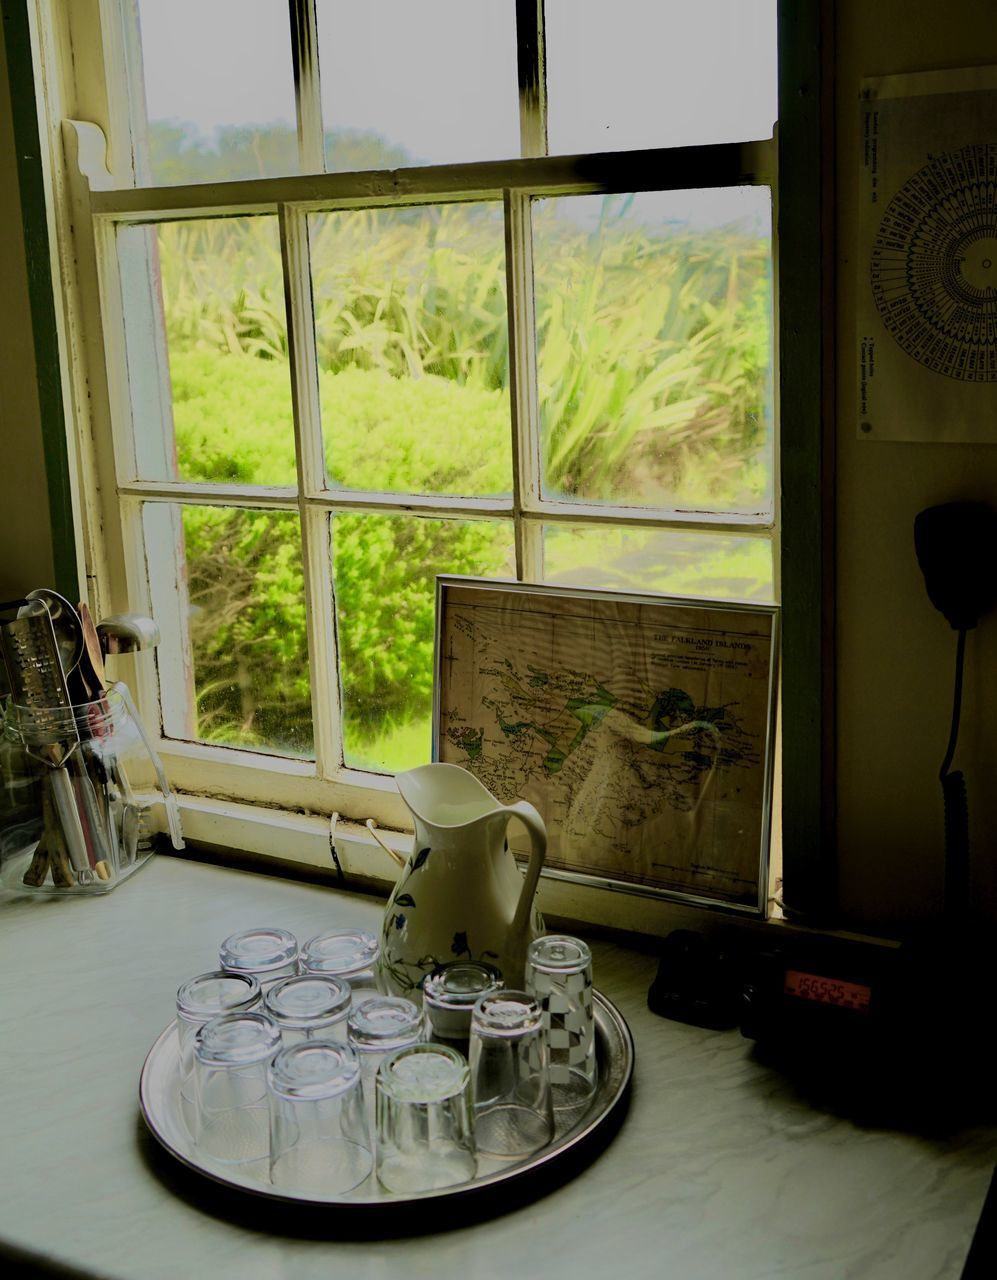 VIEW OF TABLE THROUGH WINDOW